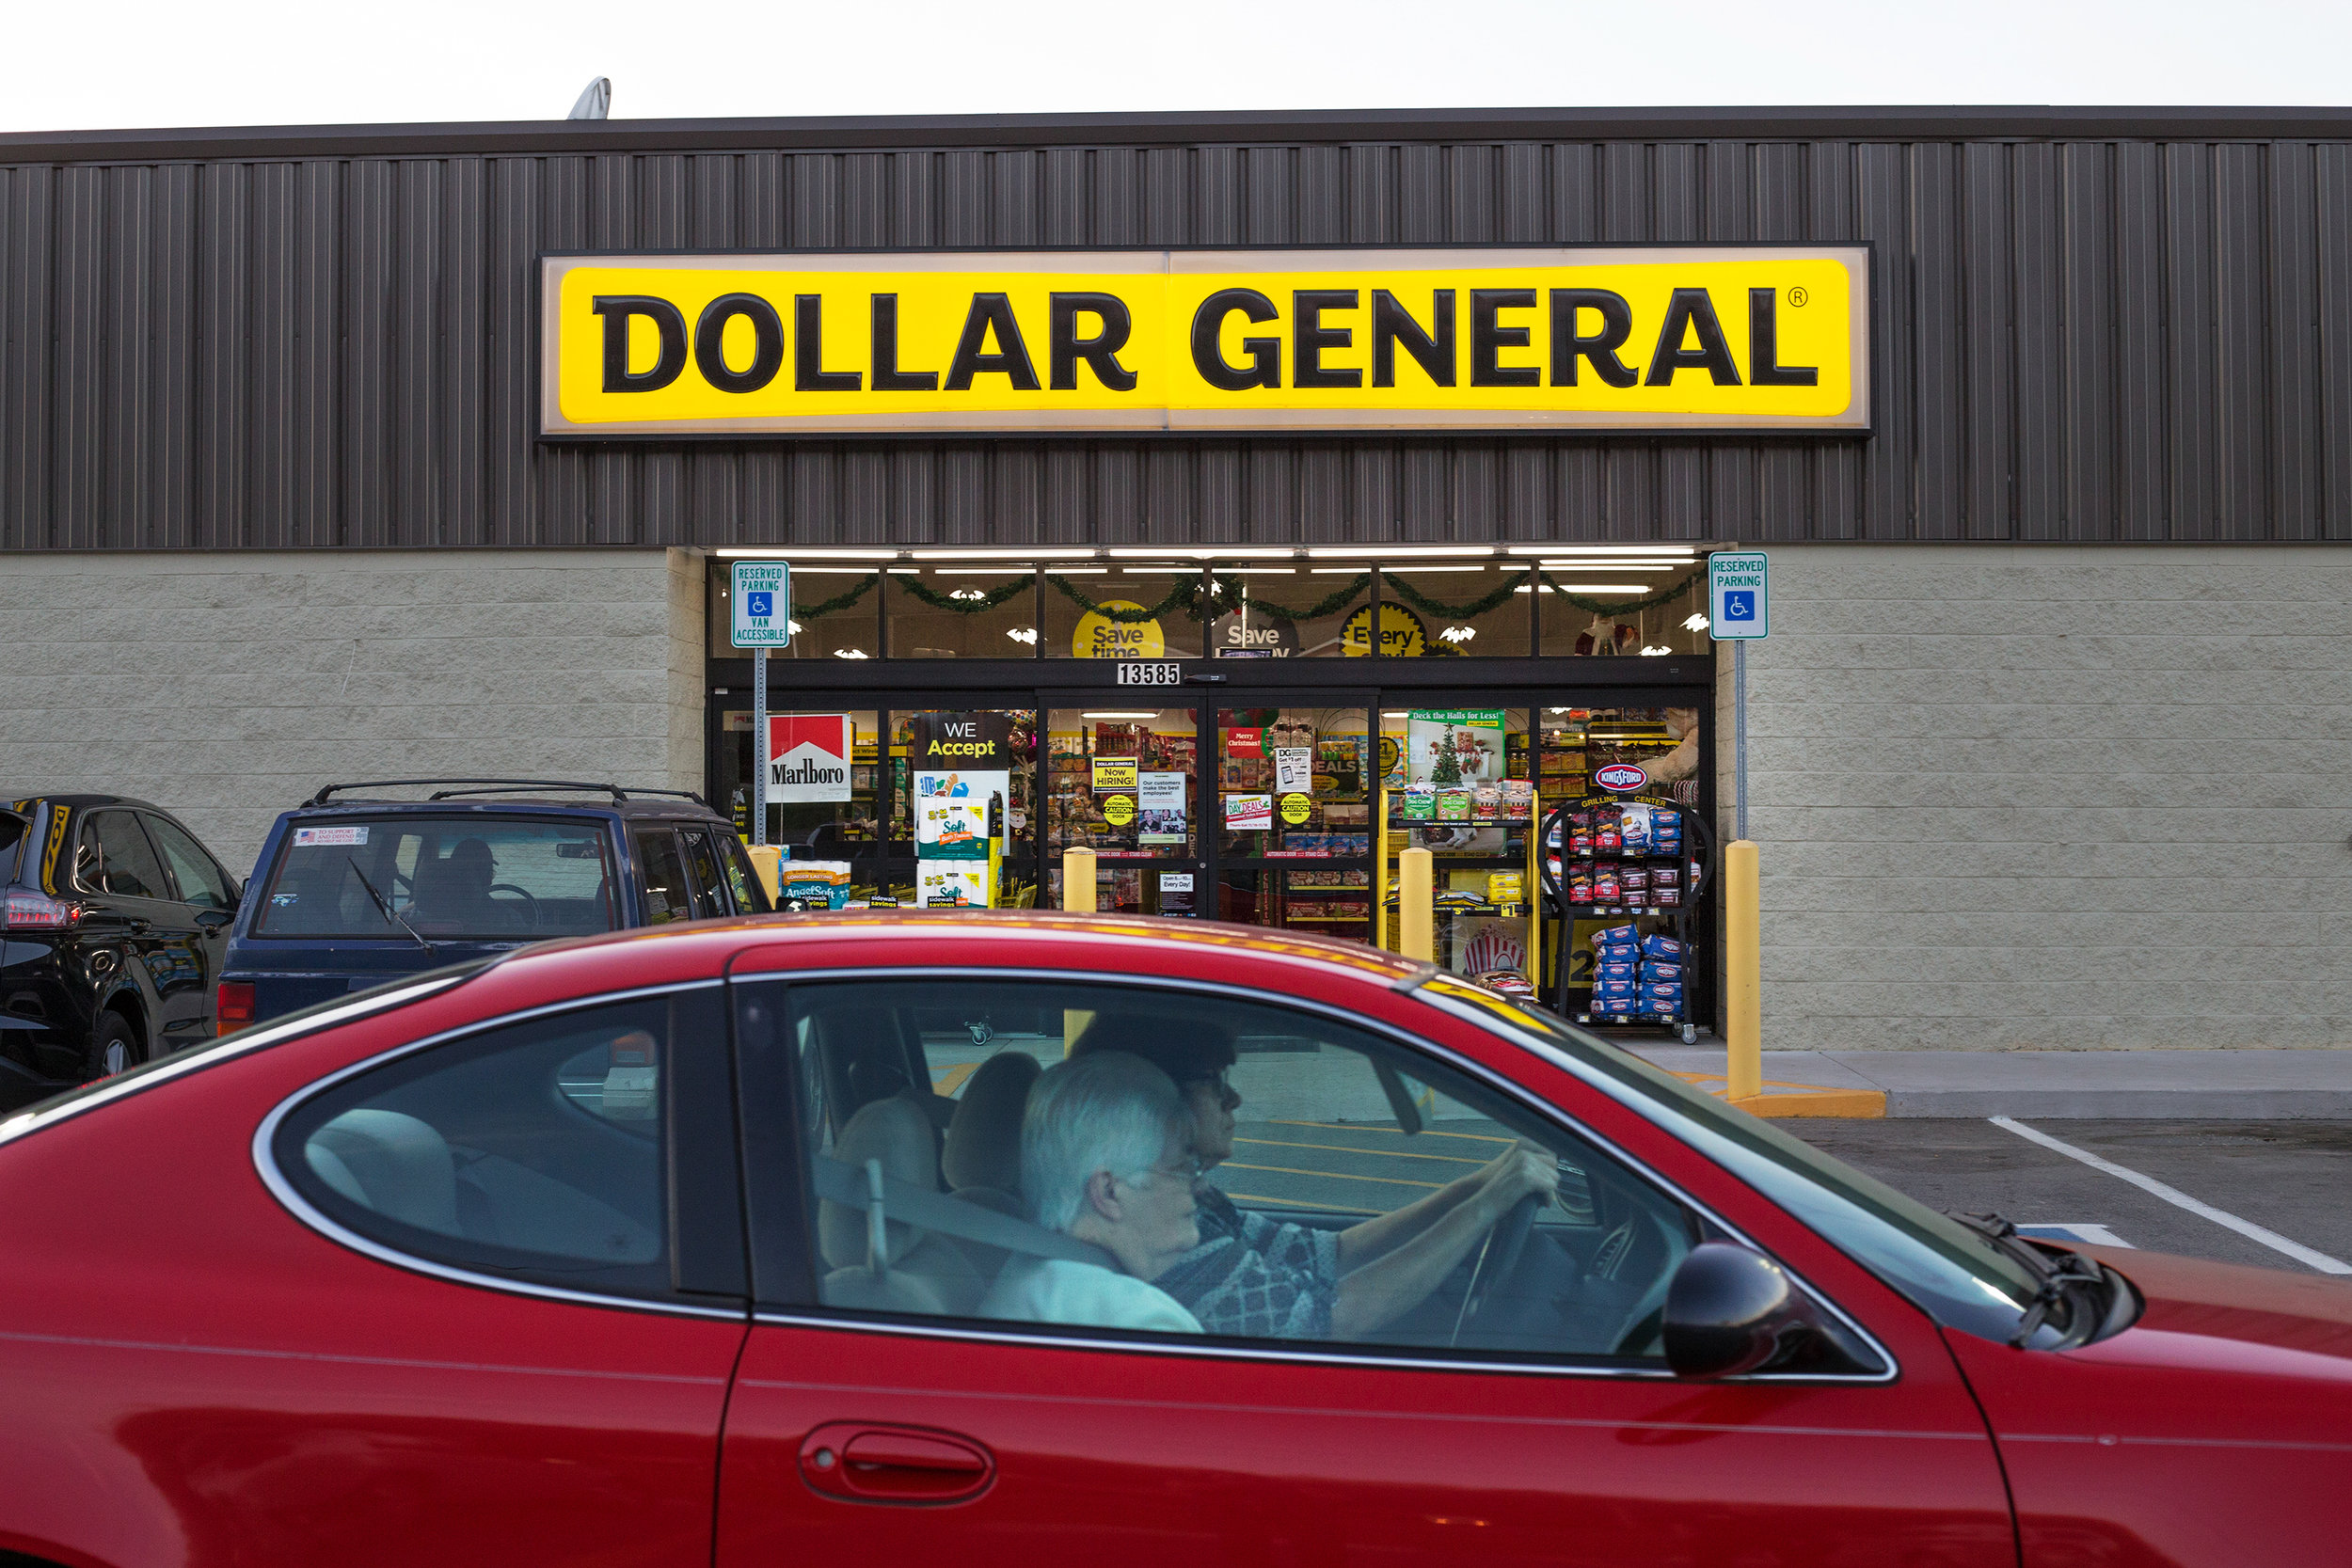 Customers exit the parking lot at the Dollar General in Evensville, Tenn. Thursday, Nov. 16 2017. Dollar General has been opening stores in rural areas, particularly food deserts where residents usually within five miles will go to shop for their groceries. However the chain does not carry fresh fruits, vegetables or meats, leaving the communities they serves to choose from various processed foods.